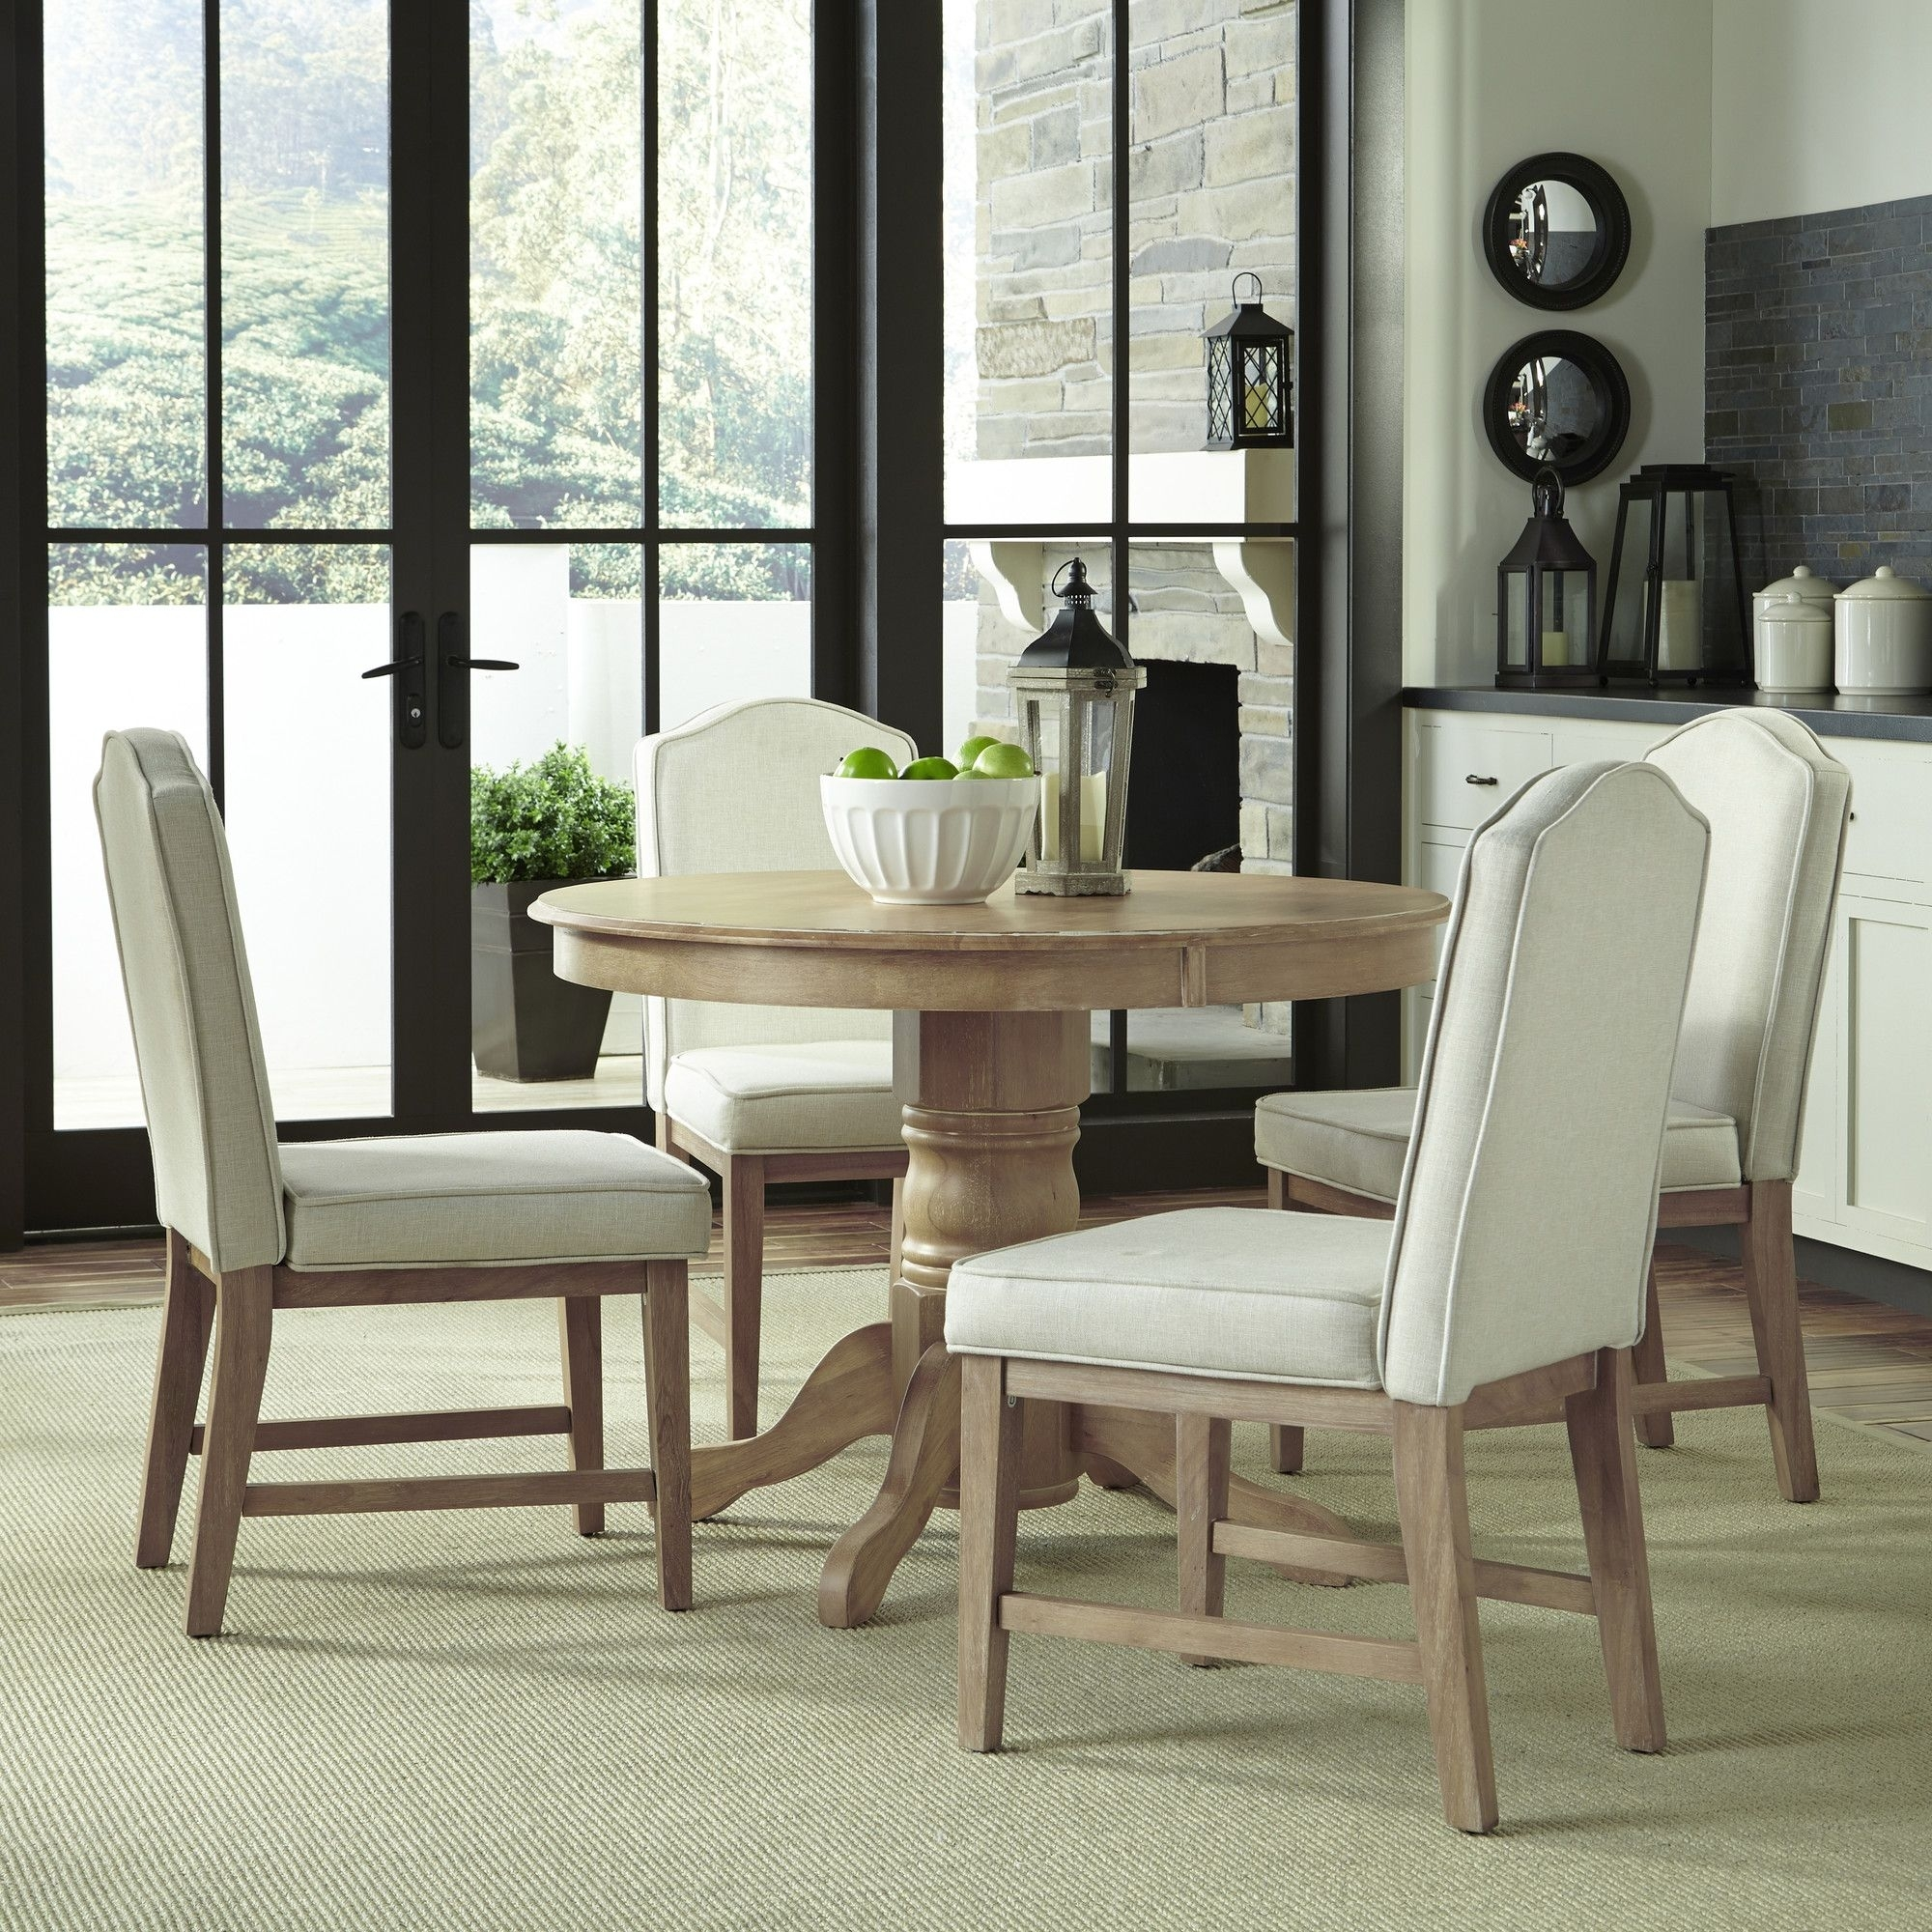 Lauren 5 Piece Dining Set | Products | Pinterest | Dining Set Within Newest Laurent 5 Piece Round Dining Sets With Wood Chairs (Photo 1 of 20)